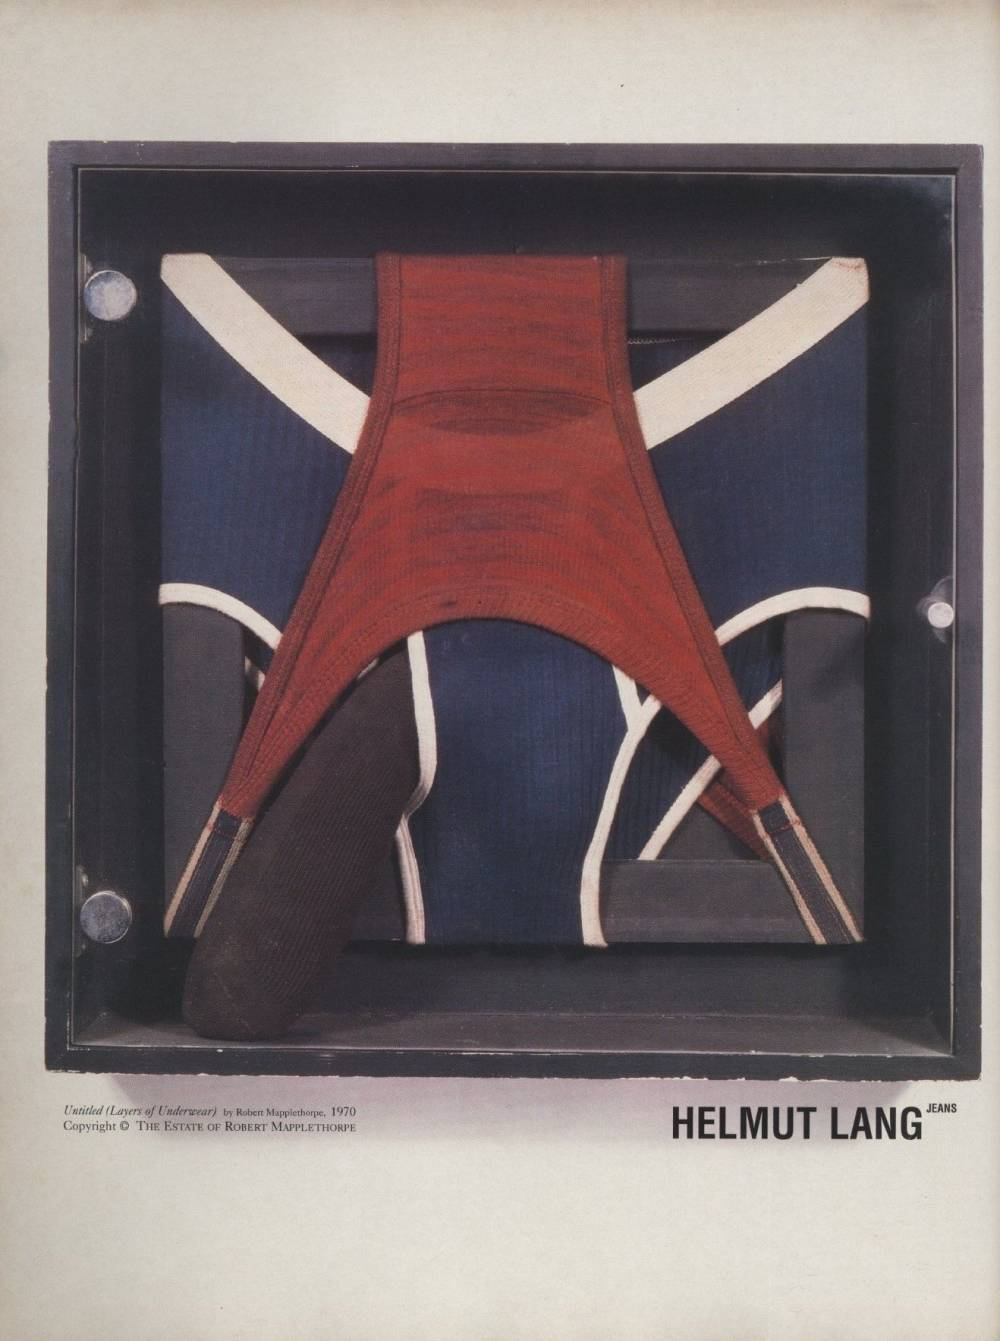 Helmut Lang, Jeans Ad Campaign  , Untitled (Layers of Underwear), Robert Mapplethorpe, 1970